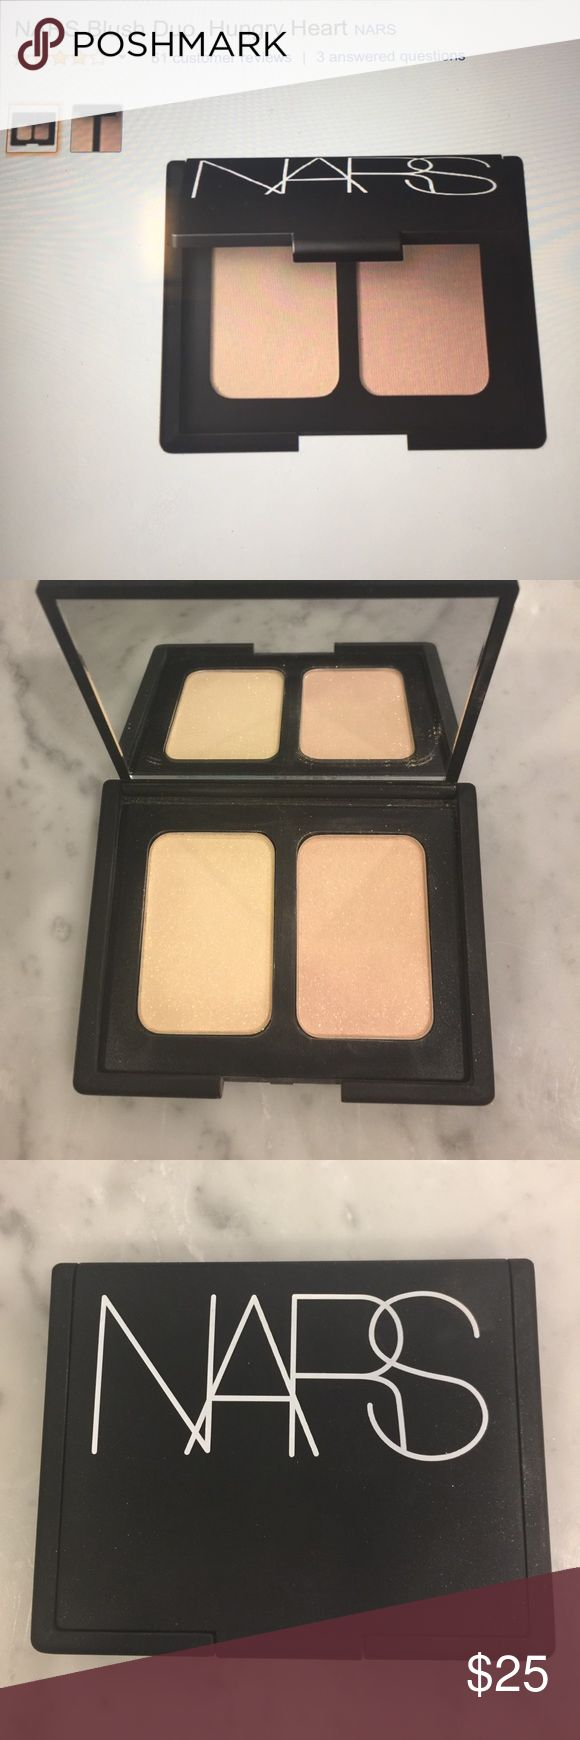 NARS Hungry Heart Blush Duo Used one time. Like new. A bronzer and blush great for everyday makeup. Bronzer is matte and blush has a little shimmer but is awesome. Find my old one right after purchased this replacement! NARS Makeup